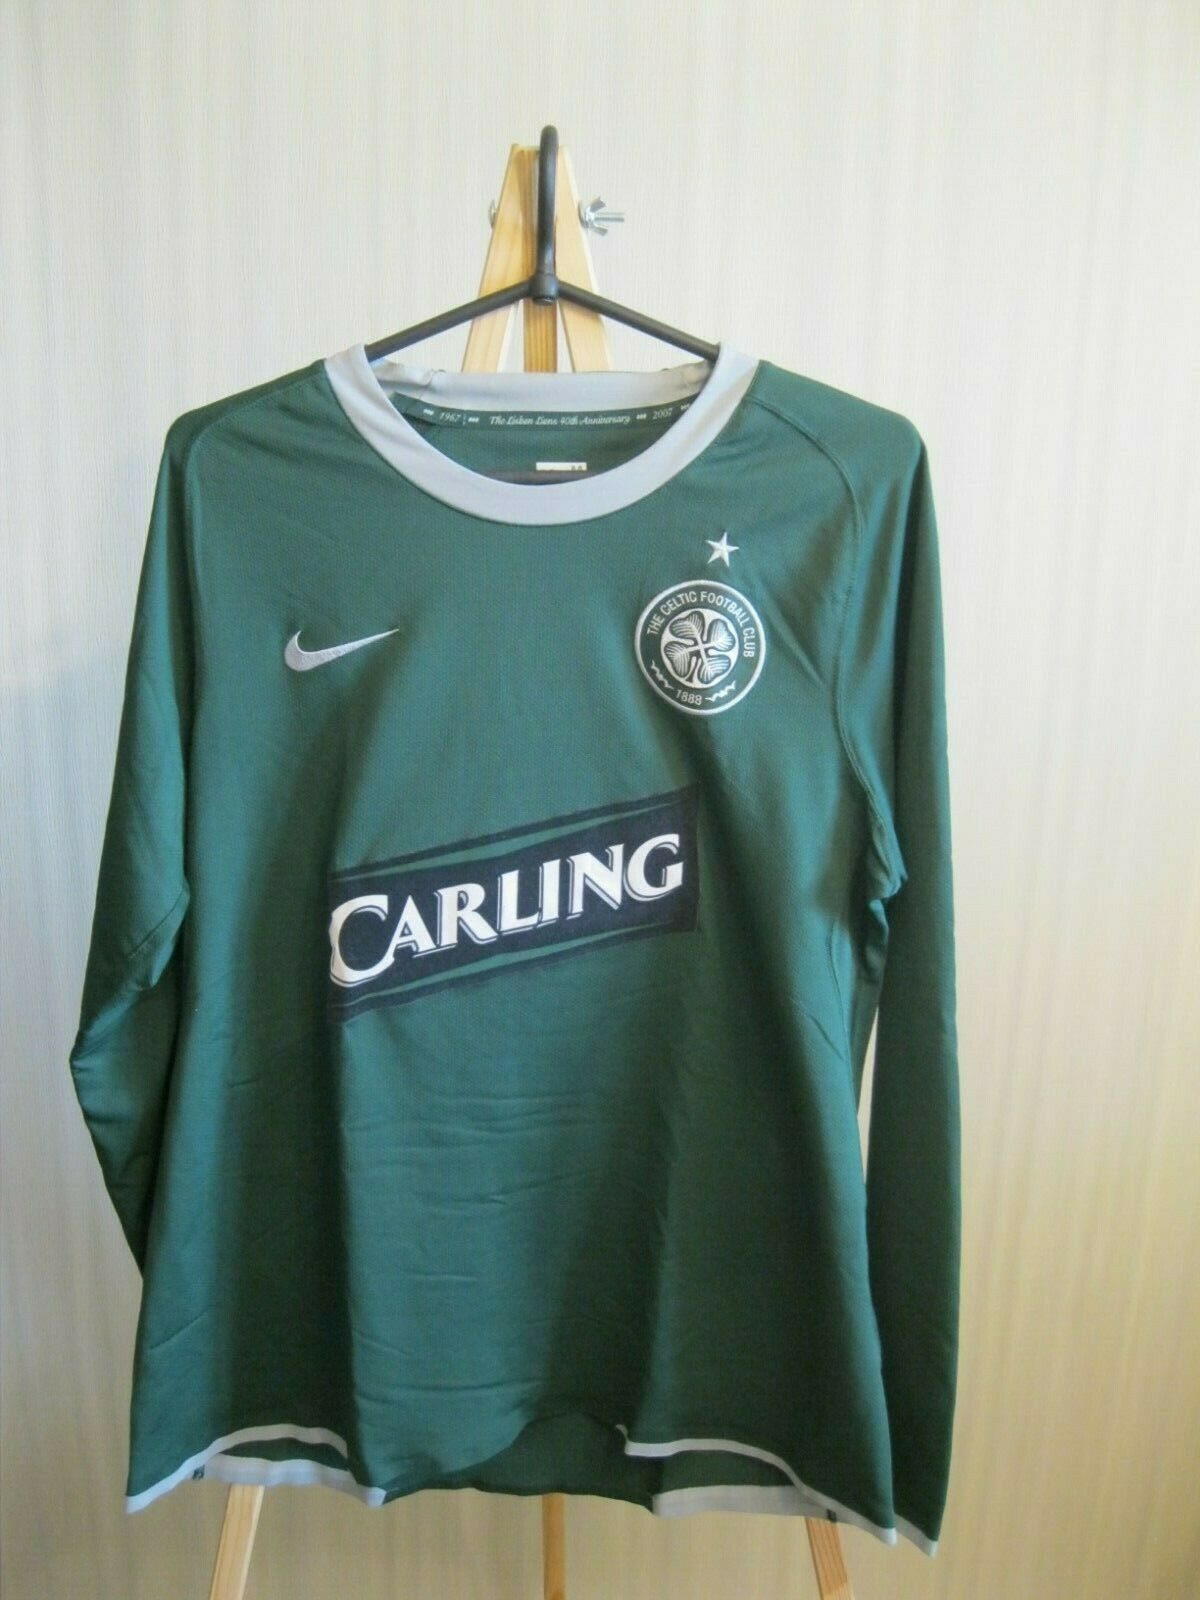 PLAYER ISSUE Celtic 2007/2008 away Size M Nike 237901-310 jersey